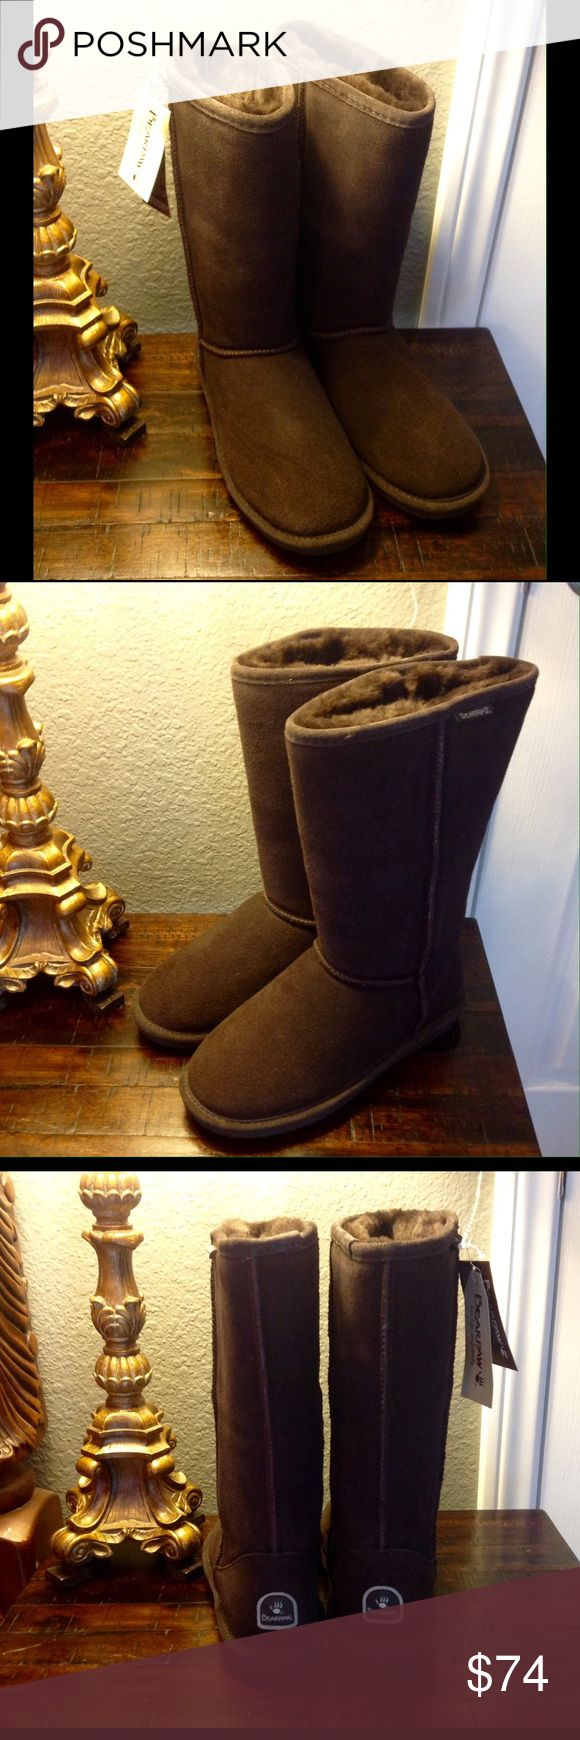 """""""HOST PICK"""" BEARPAW Emma Boots Brown Size 9 Taller And Toastier. Get the coverage you covet with the Bearpaw Women's Emma Tall Boot. The boot's 12-inch shaft height (measured from the arch) protects your leg a little more when you step out in a skirt; you also have the option of folding the top down for a different look. The Emma's sheepskin-wool lining and sheepskin footbed not only provide highly effective warmth, but they breathe and wick moisture. The redesigned rubber sole offers great…"""